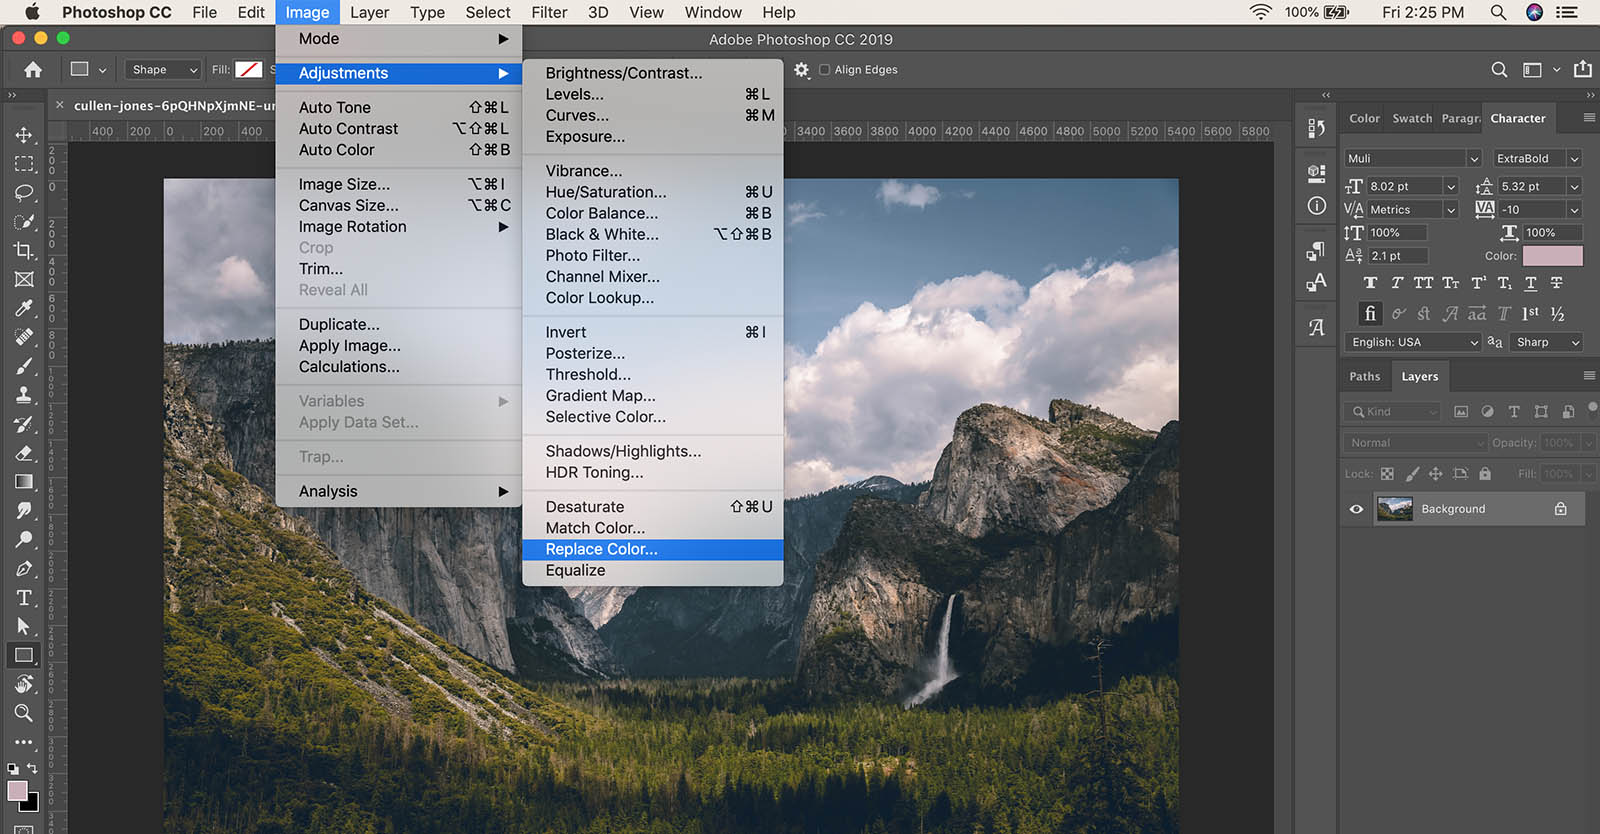 How to replacecolorinPhotoshop